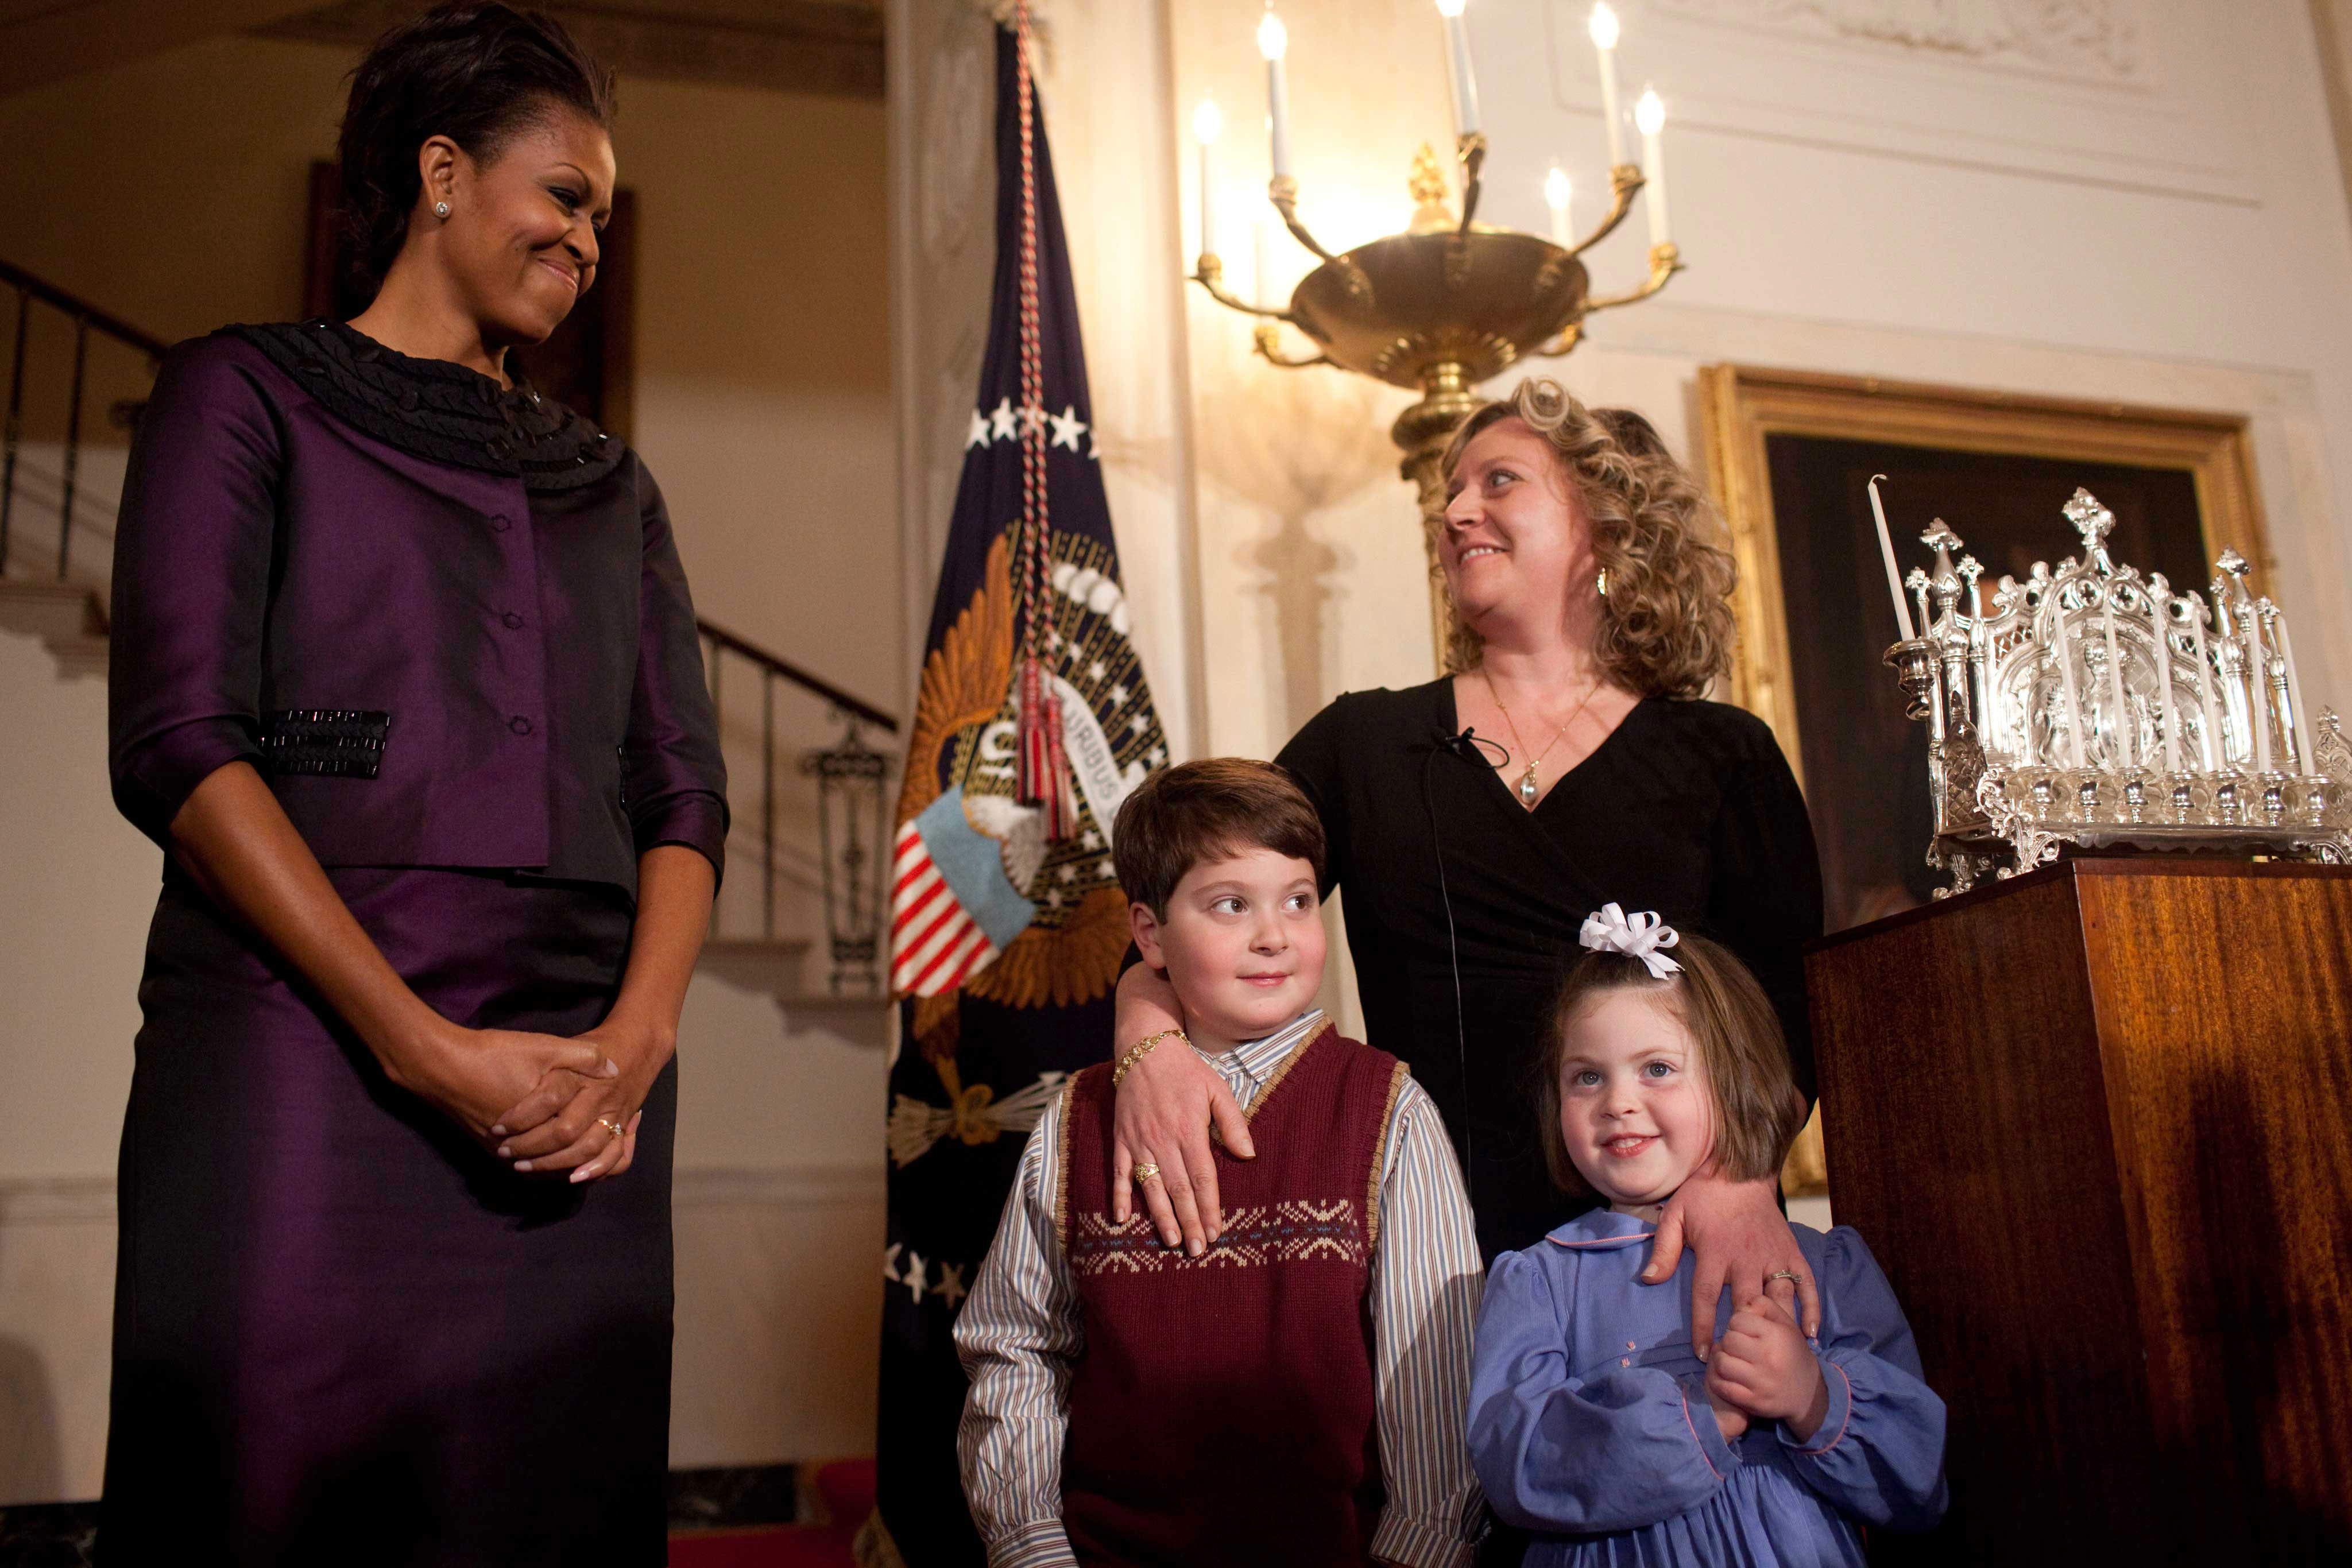 First Lady Michelle Obama stands with Alison Buckholtz and her children at Hanukkah Reception